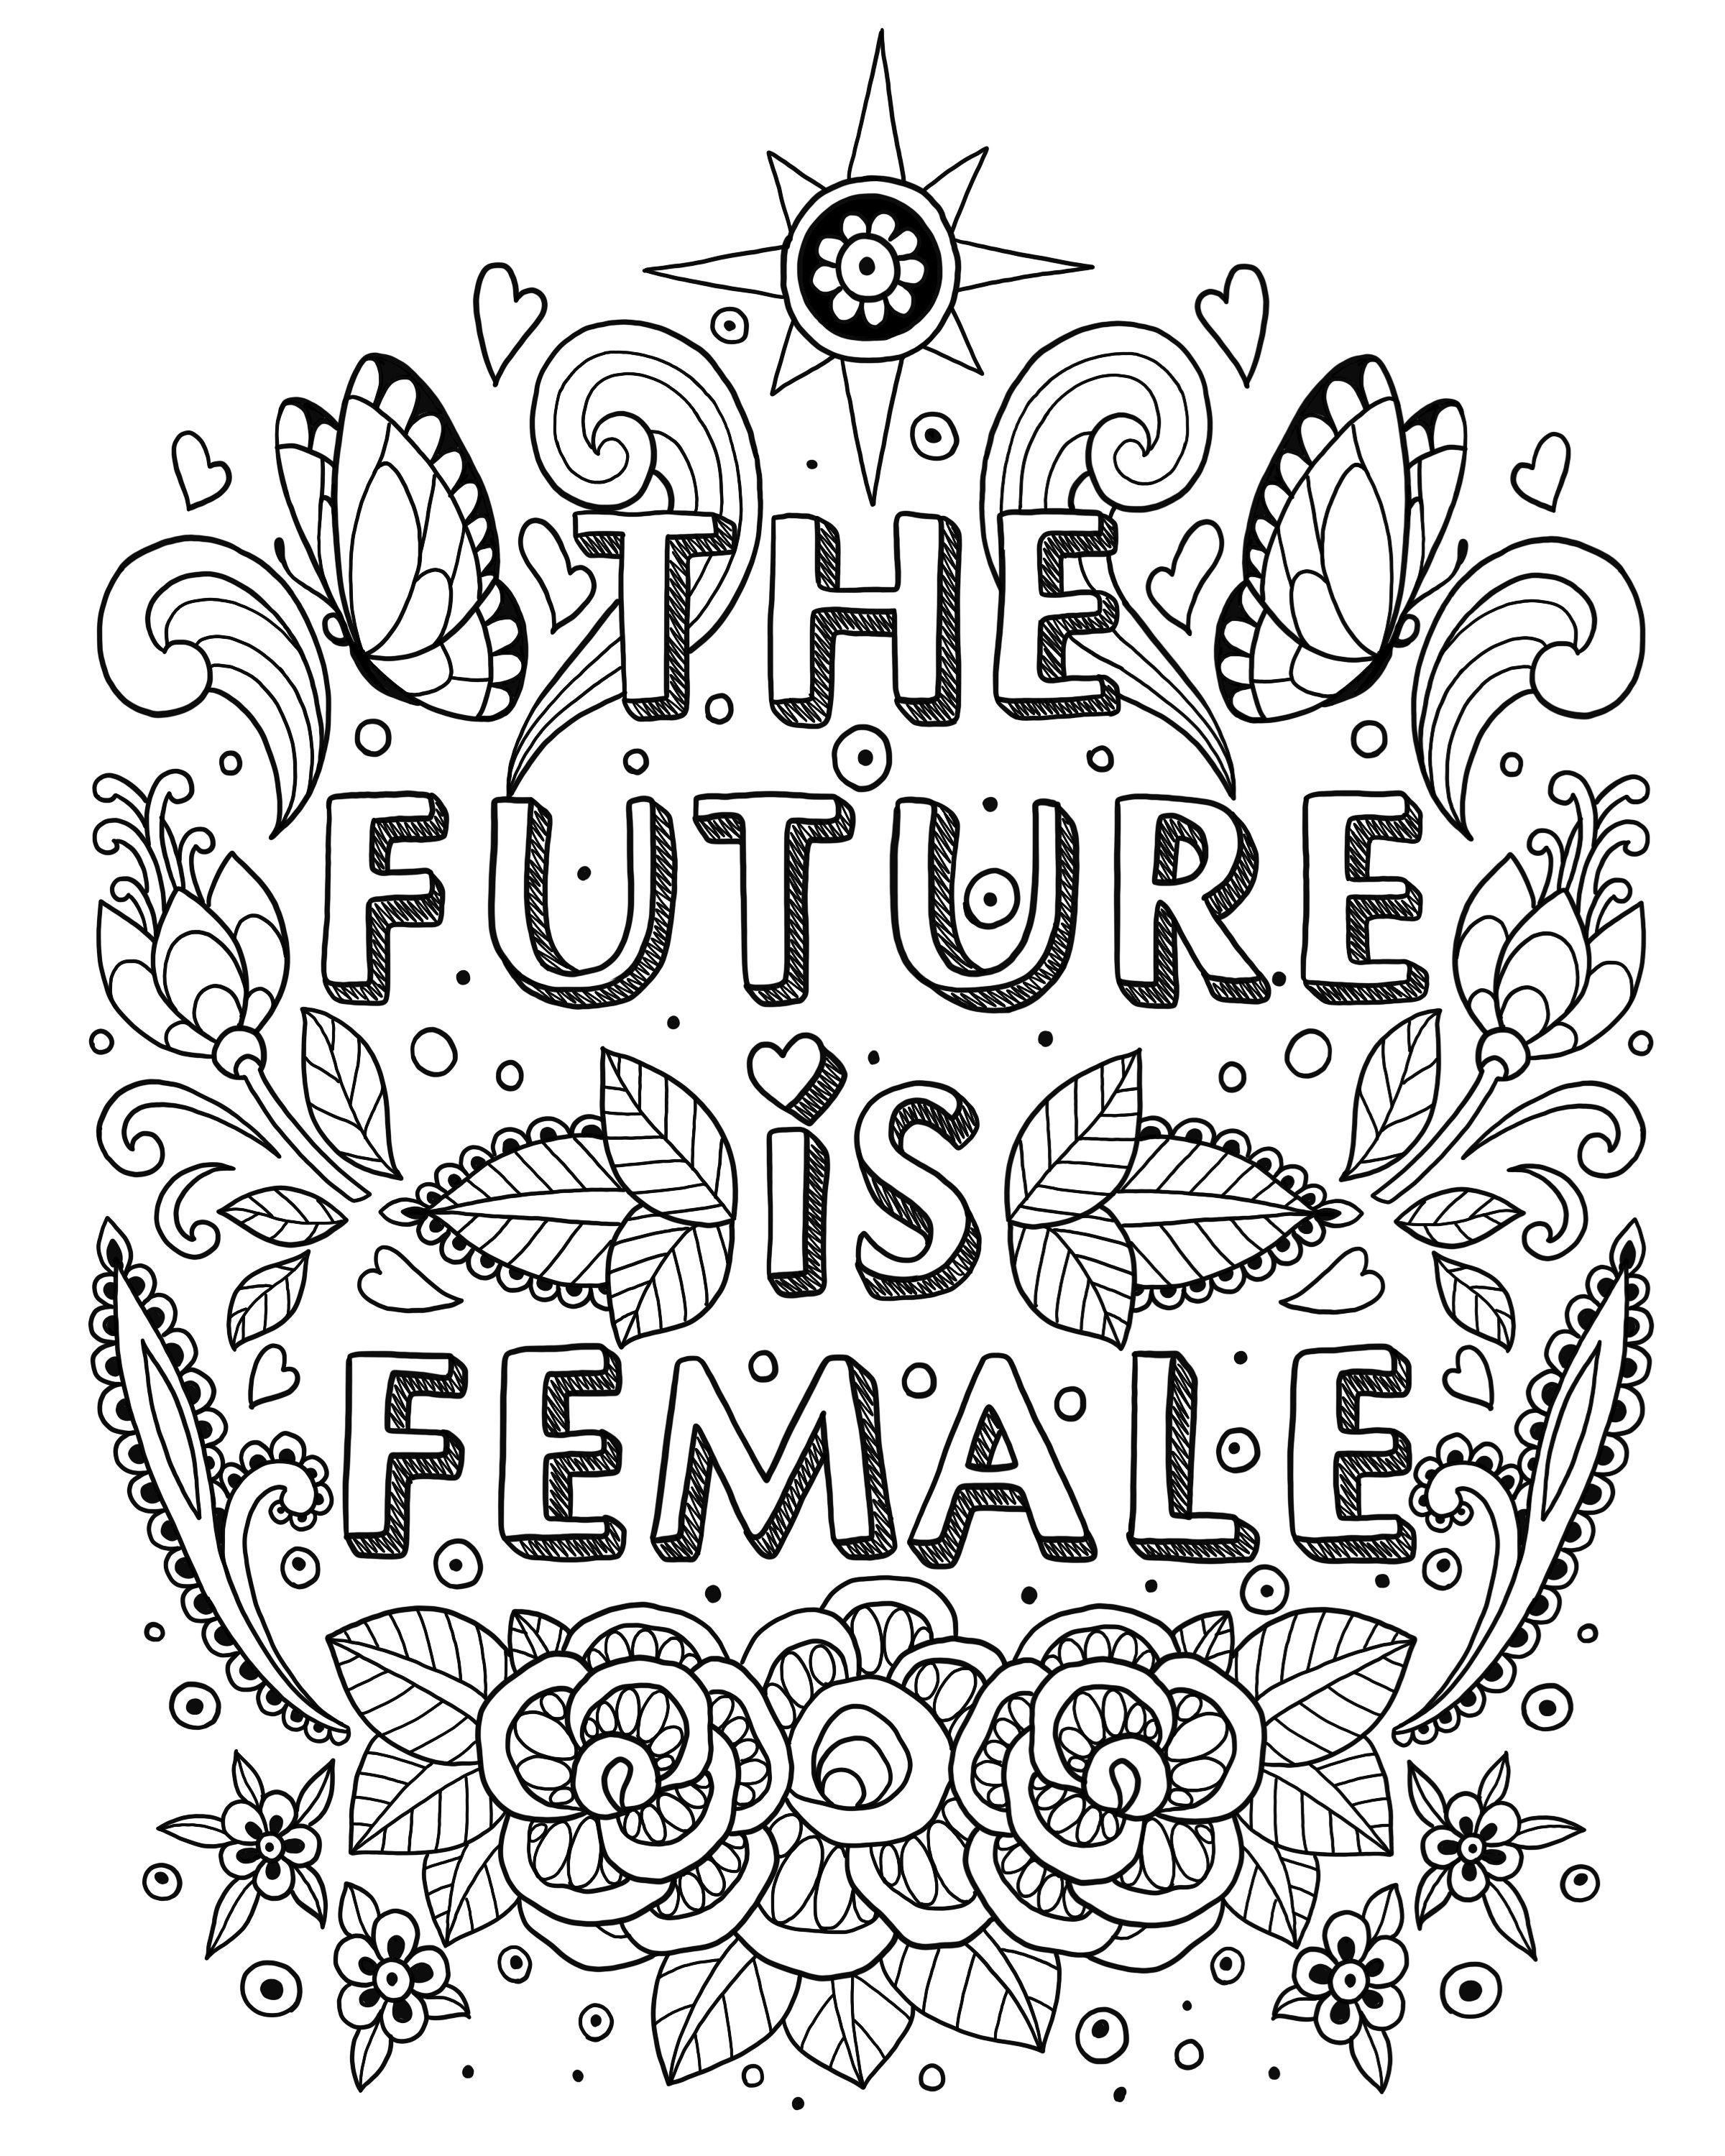 Free Coloring Pages The Future Is Female Adultcoloringbook Girlboss Futurei Quote Coloring Pages Coloring Pages For Grown Ups Coloring Pages Inspirational